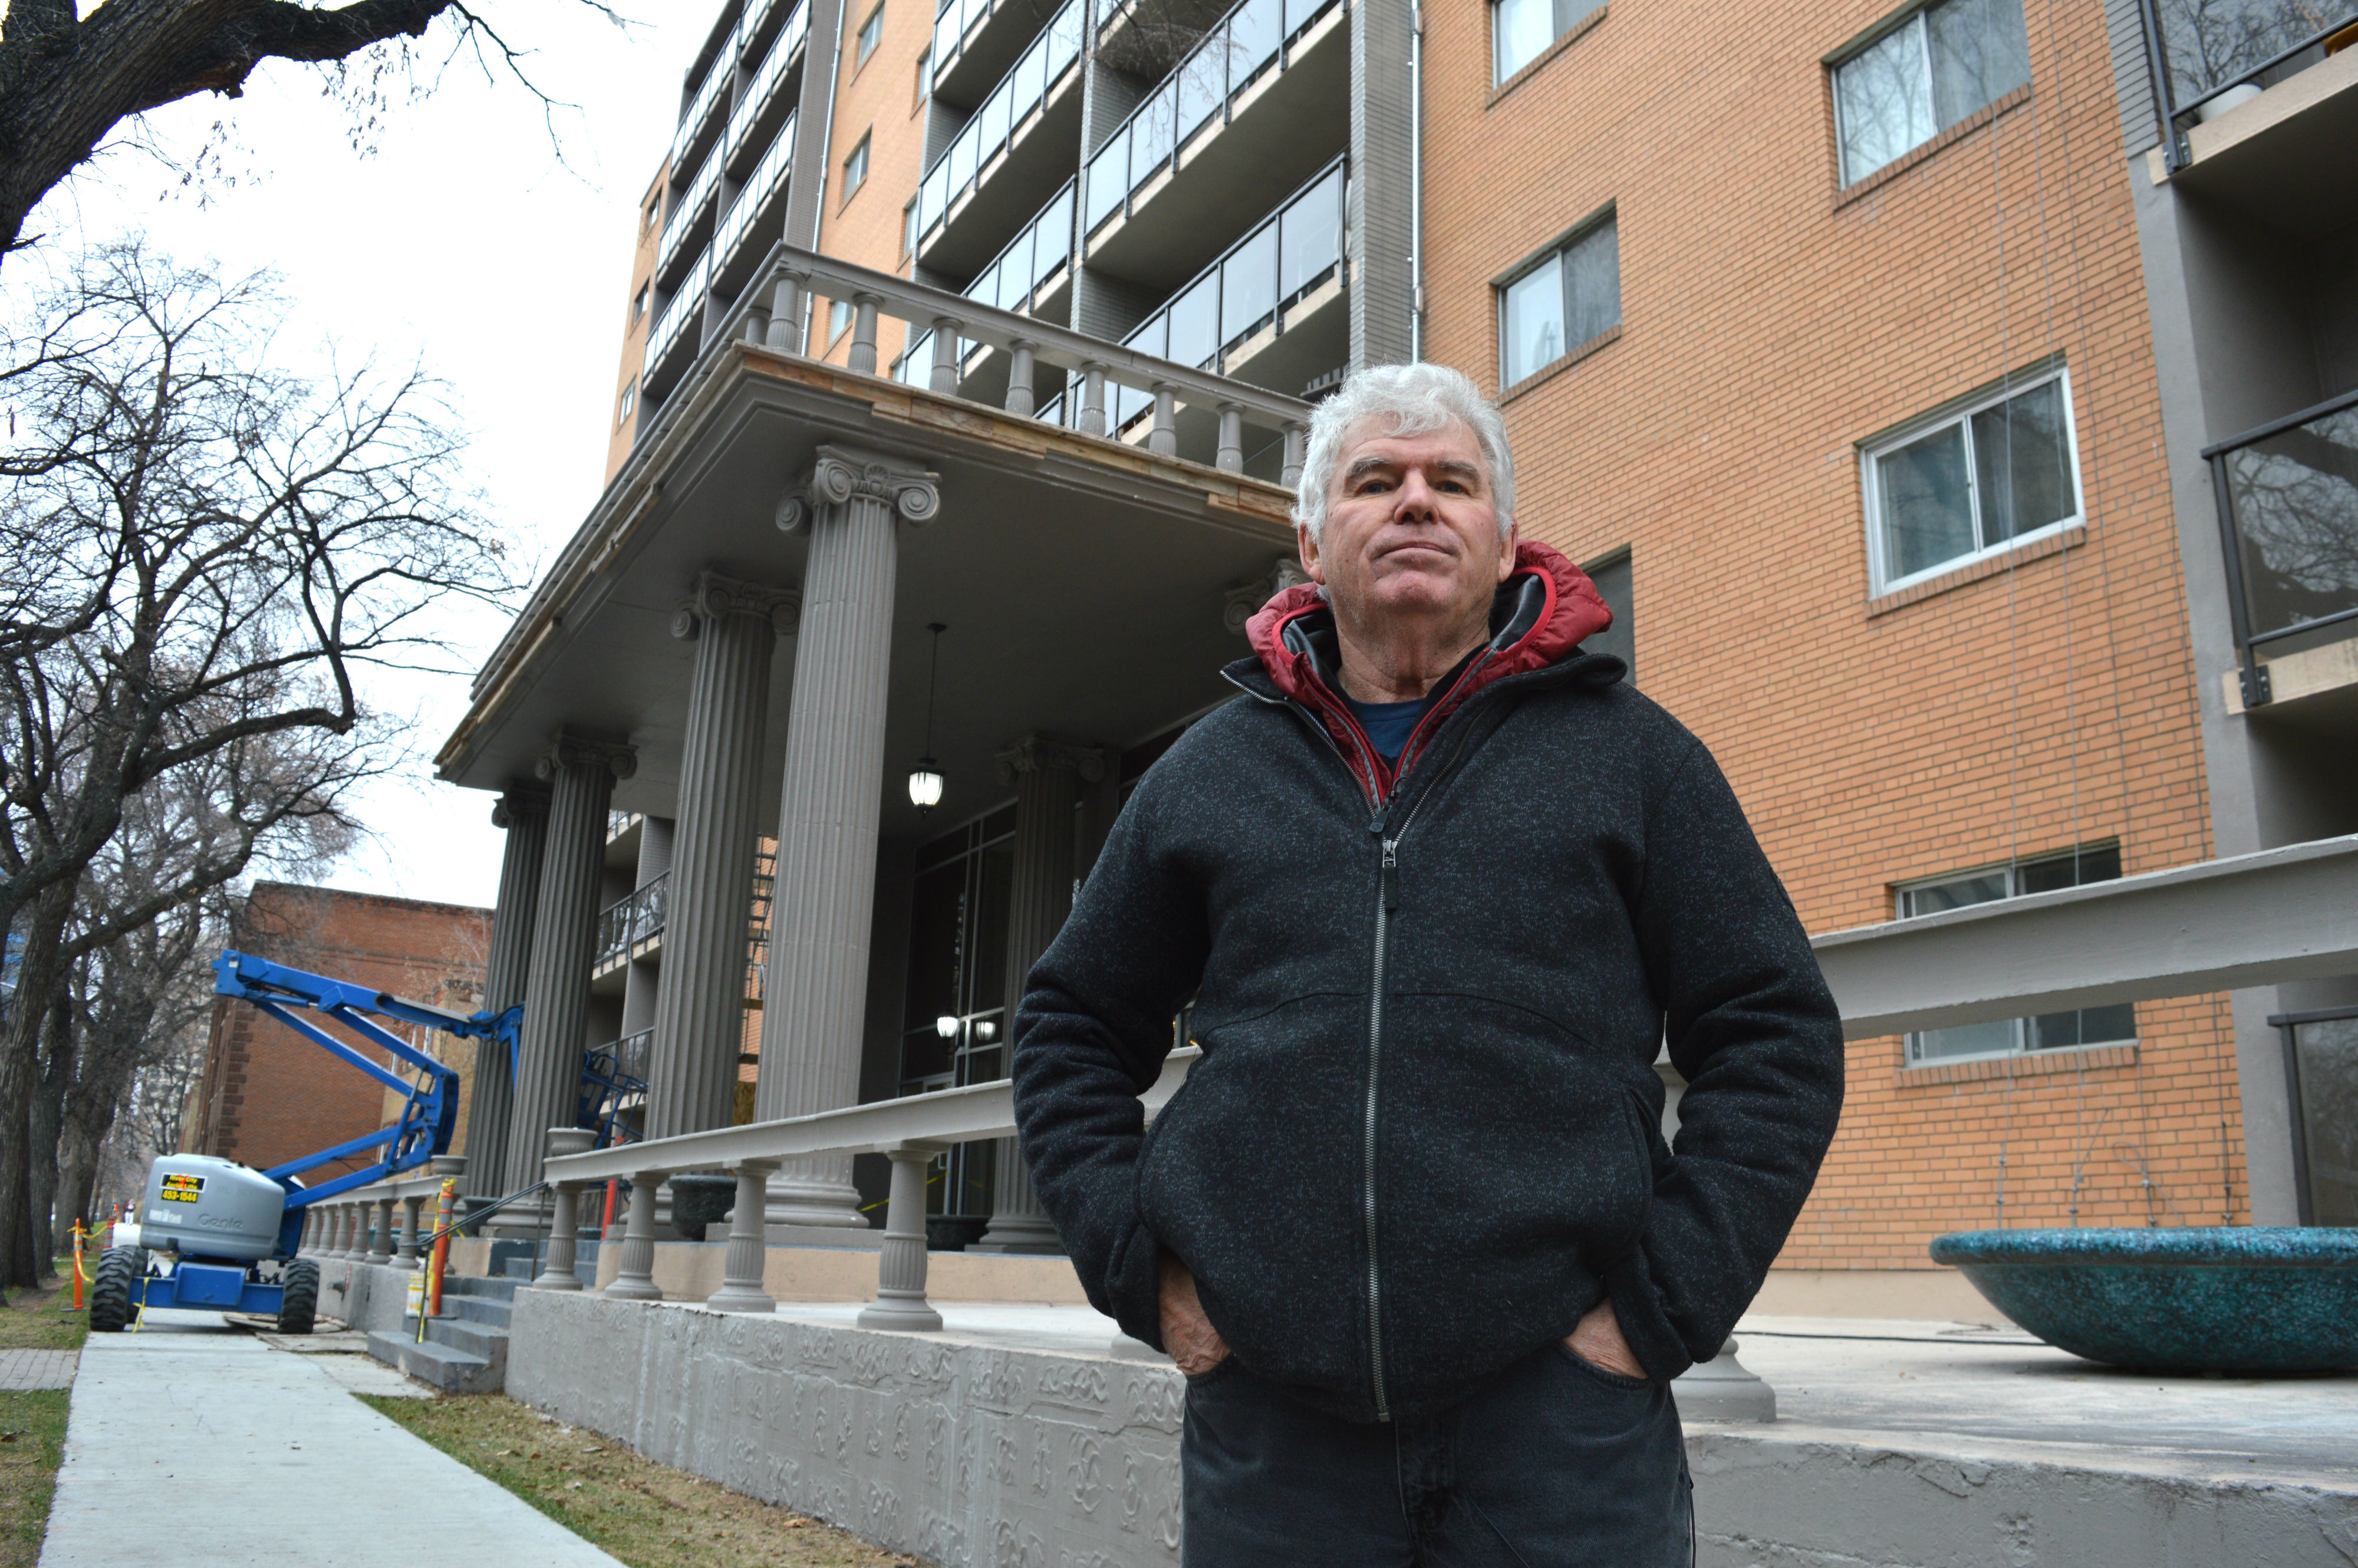 Bob Kelly, great-great-nephew of Thomas Kelly, stands in front of the Kelly House Apartments at the corner of Carlton Street and Assiniboine Avenue. (Cameron MacLean/CBC)